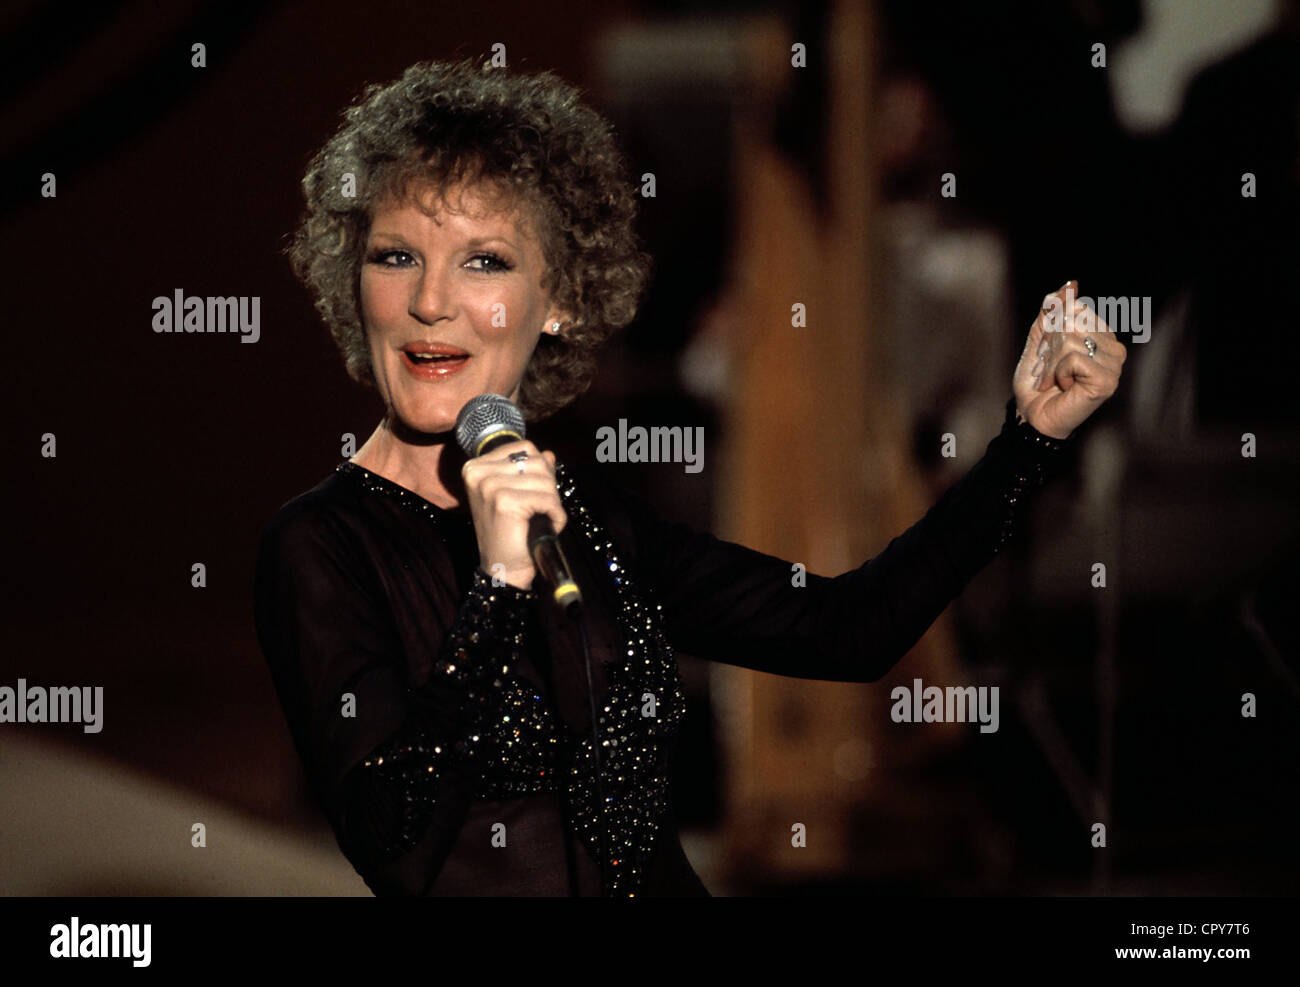 Clark, Petula, * 15.11.1932, British singer, actress, half length, during a show, with microphone, 1980s, Additional - Stock Image